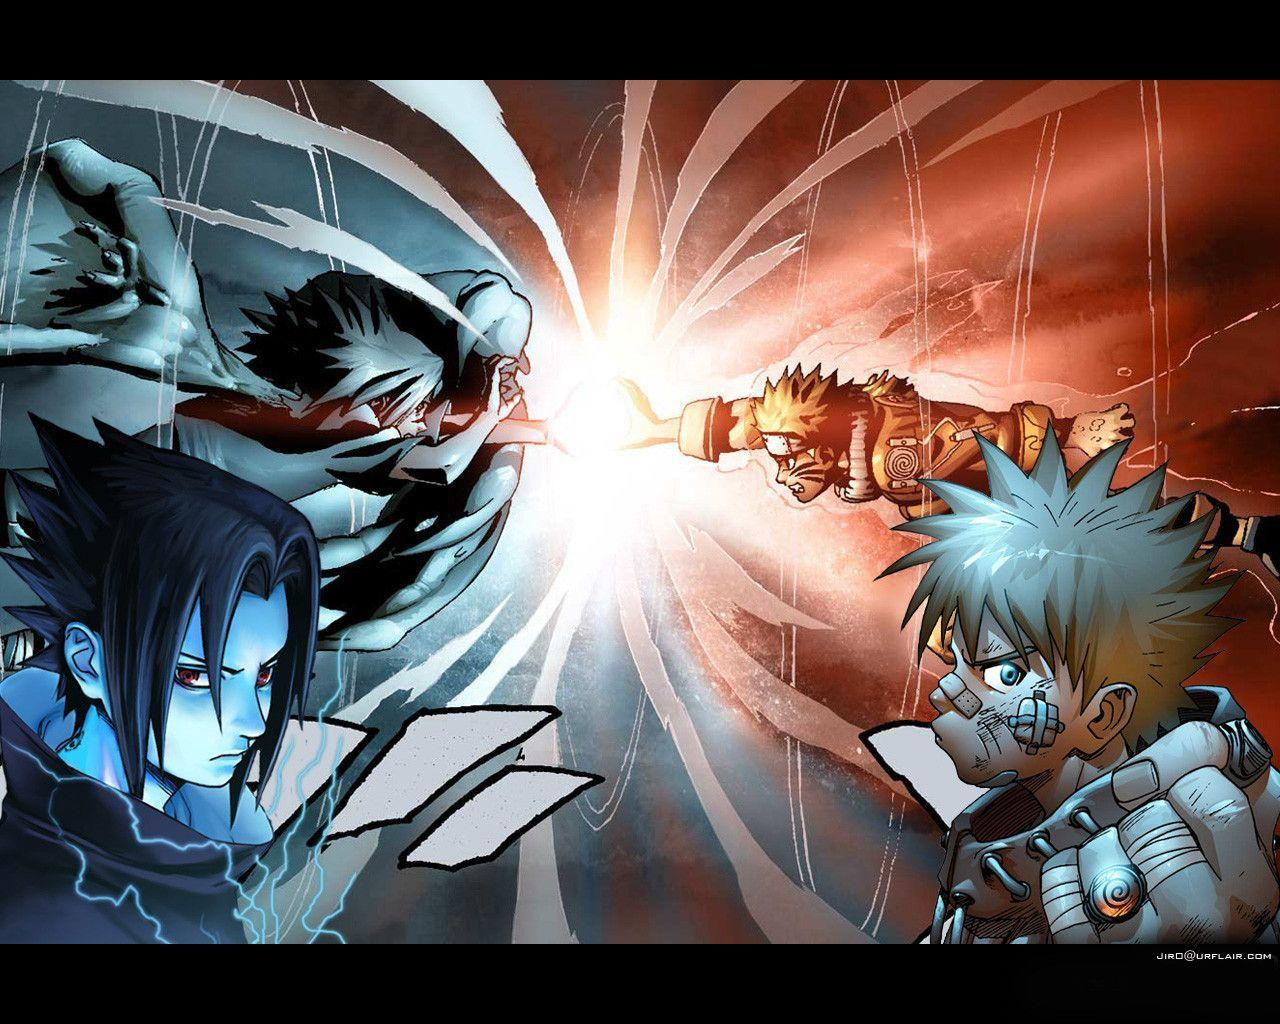 Naruto Vs Sasuke 1 Wallpapers and Pictures